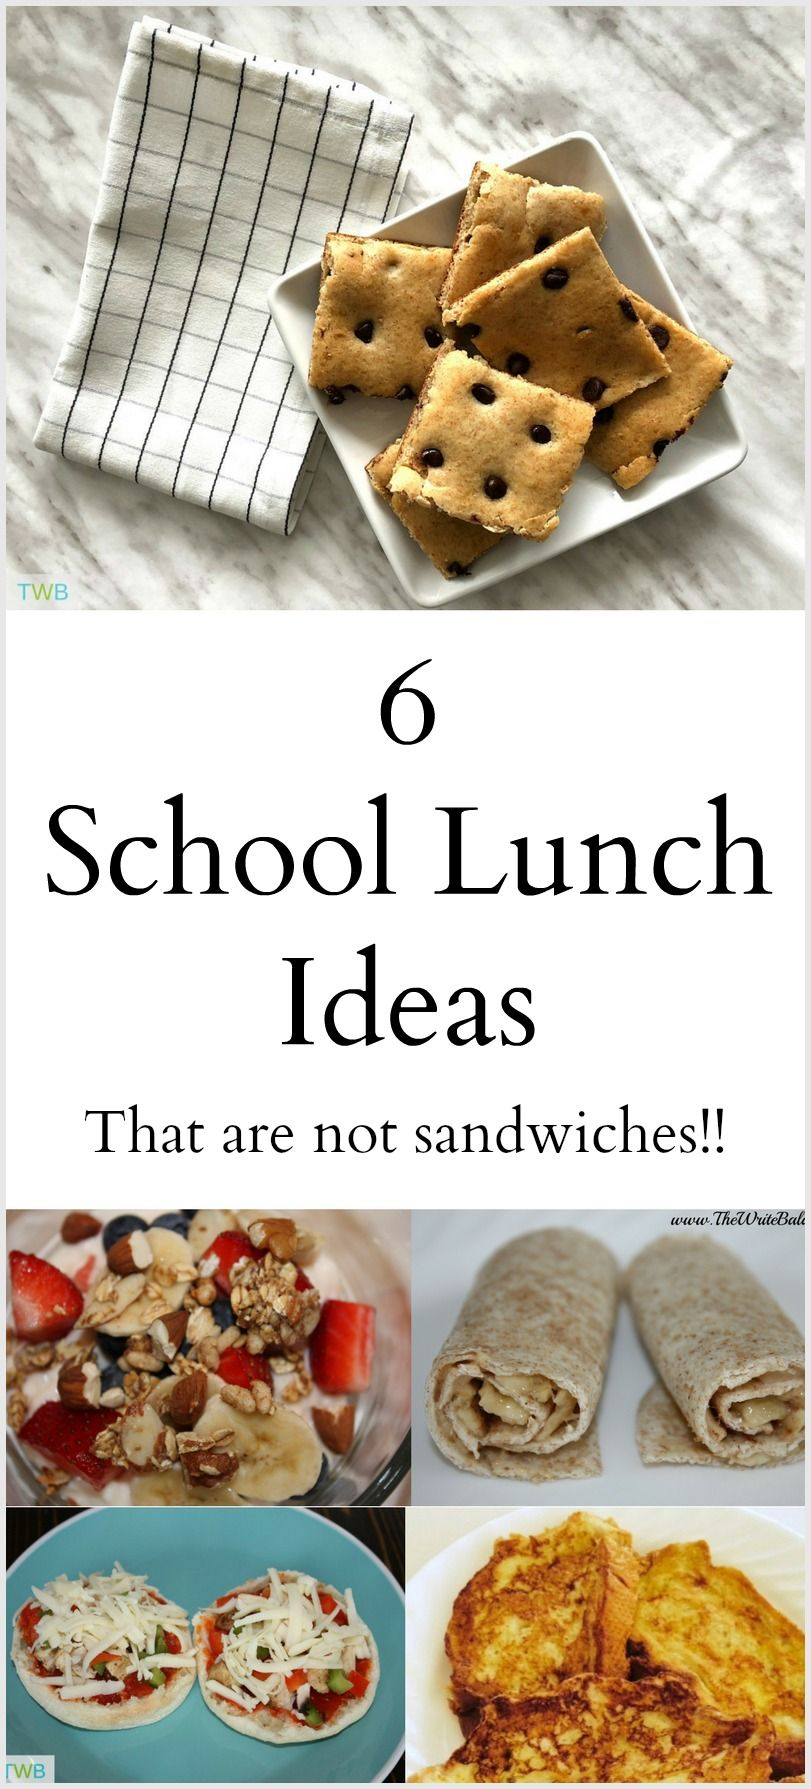 6 back-to-school lunch ideas that are not sandwiches | food